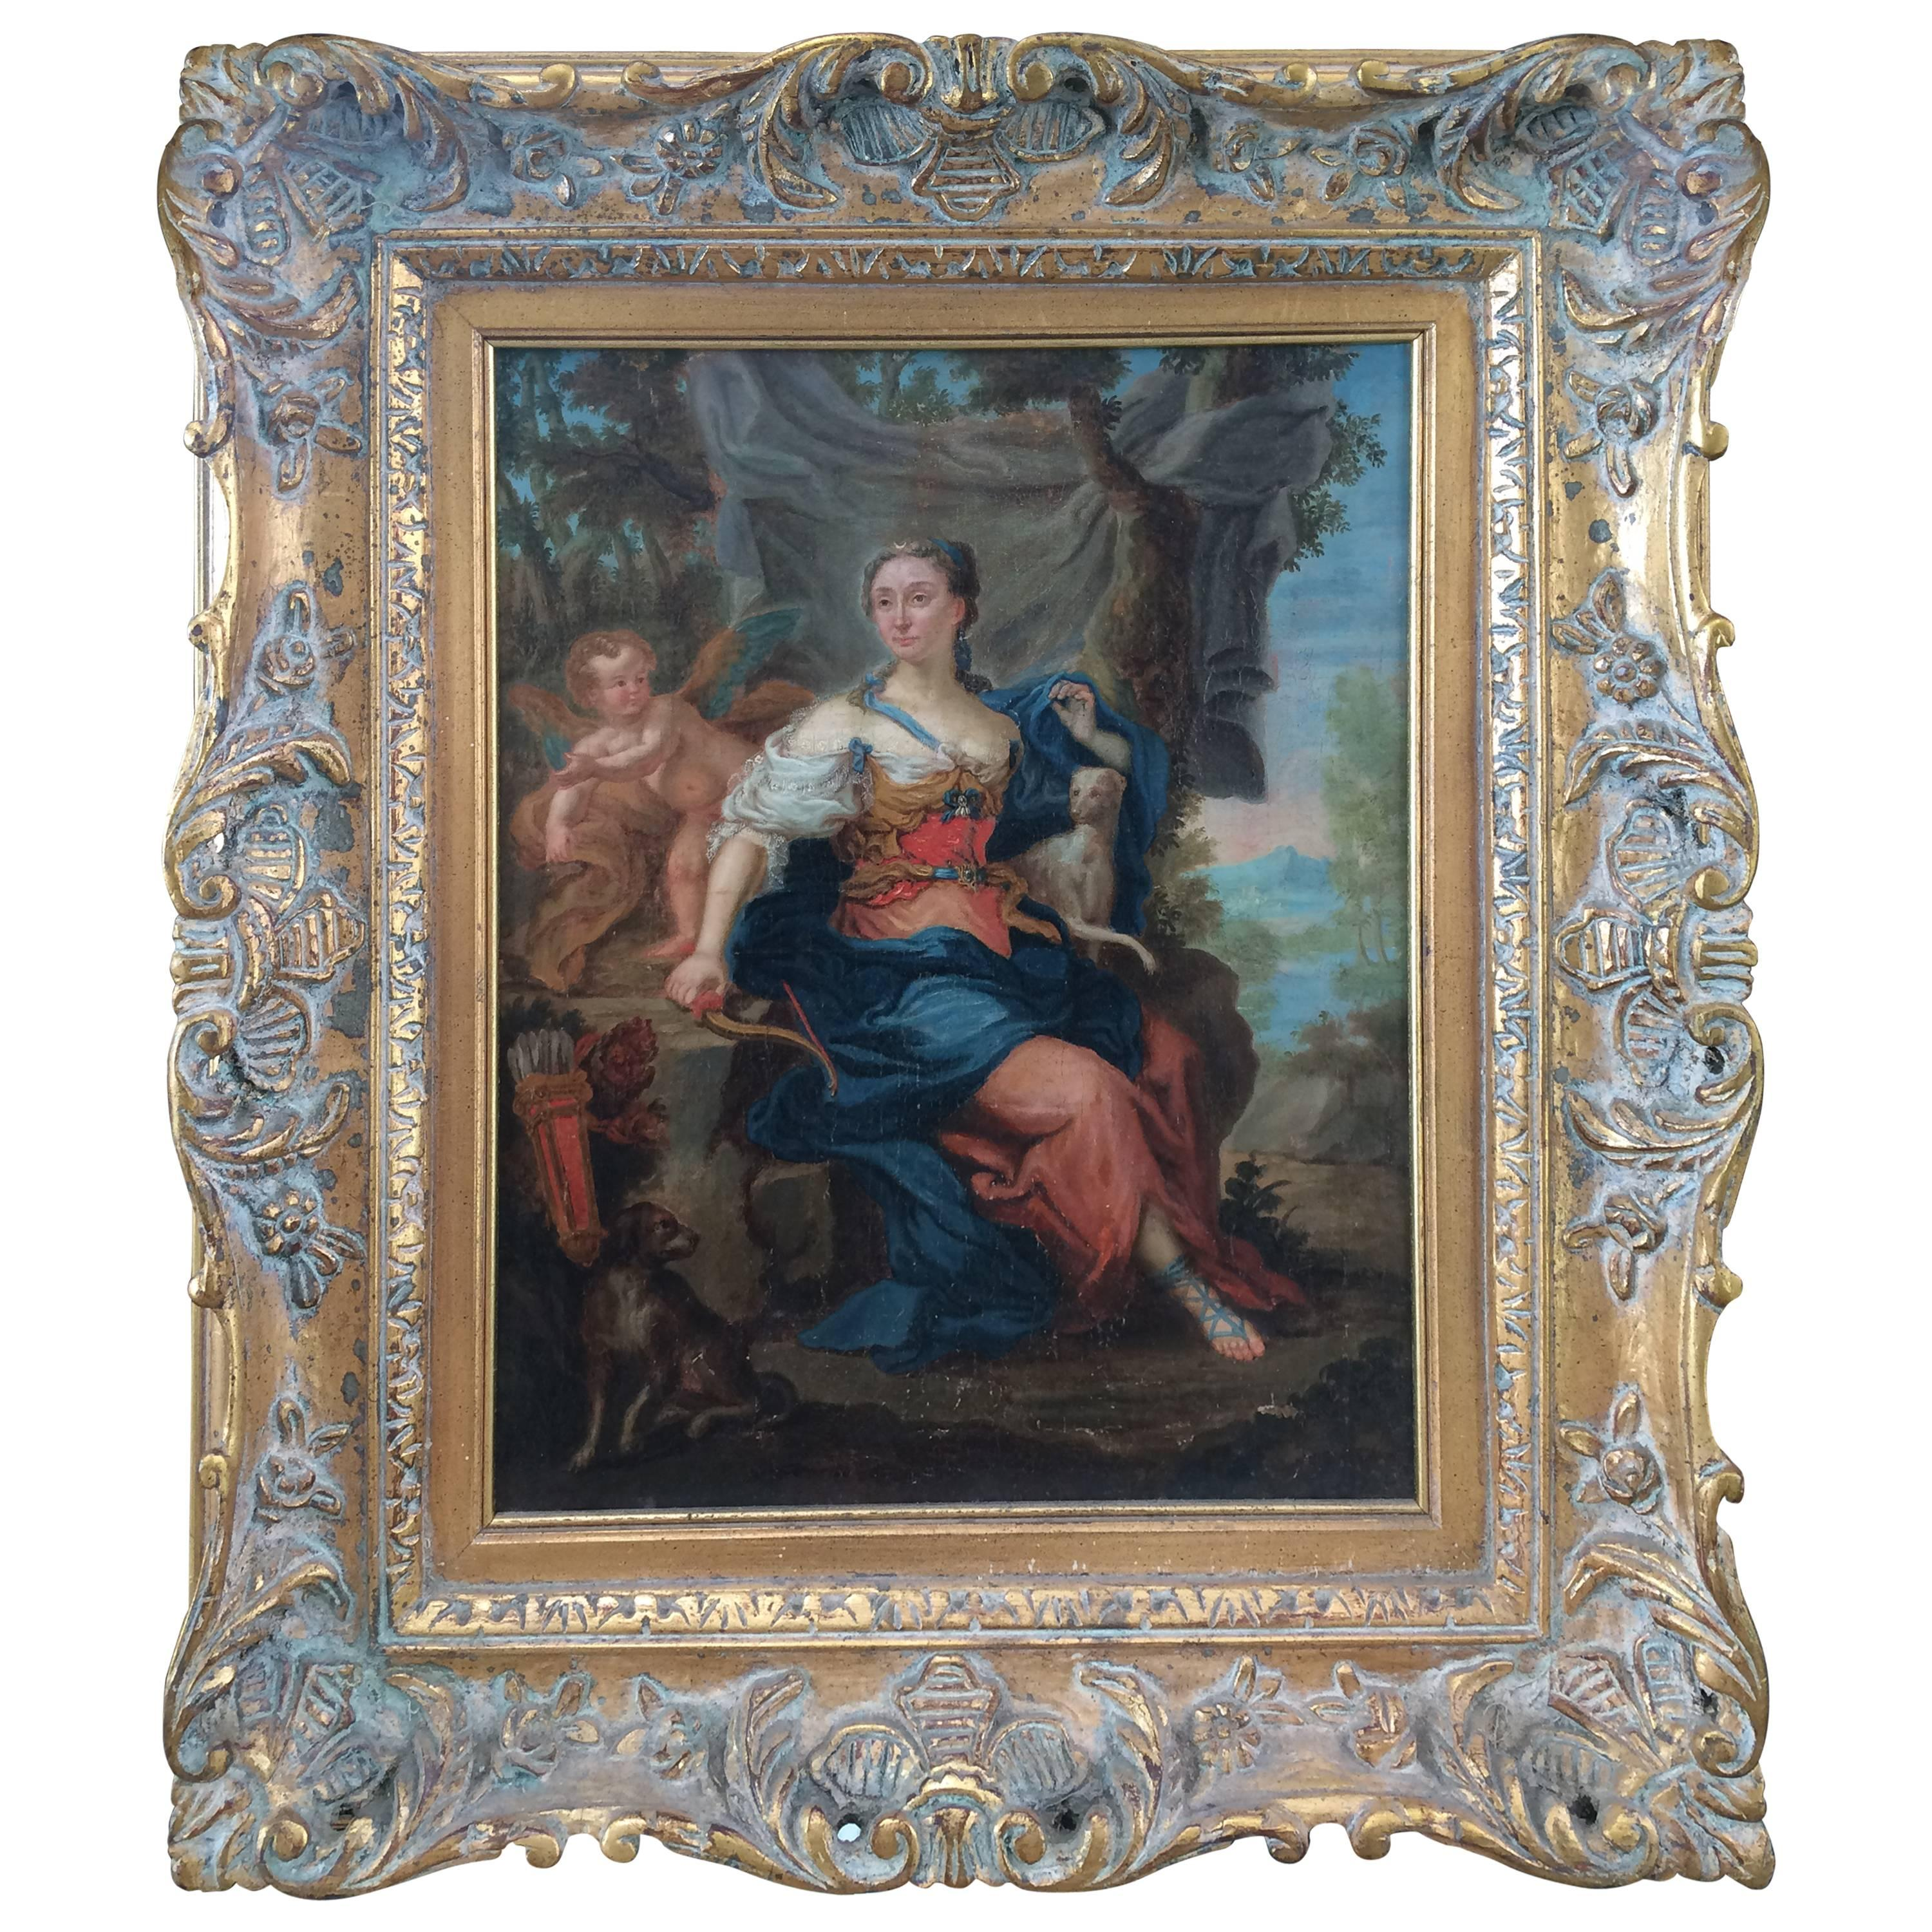 Oil on Canvas of Diana, Goddess of the Hunt